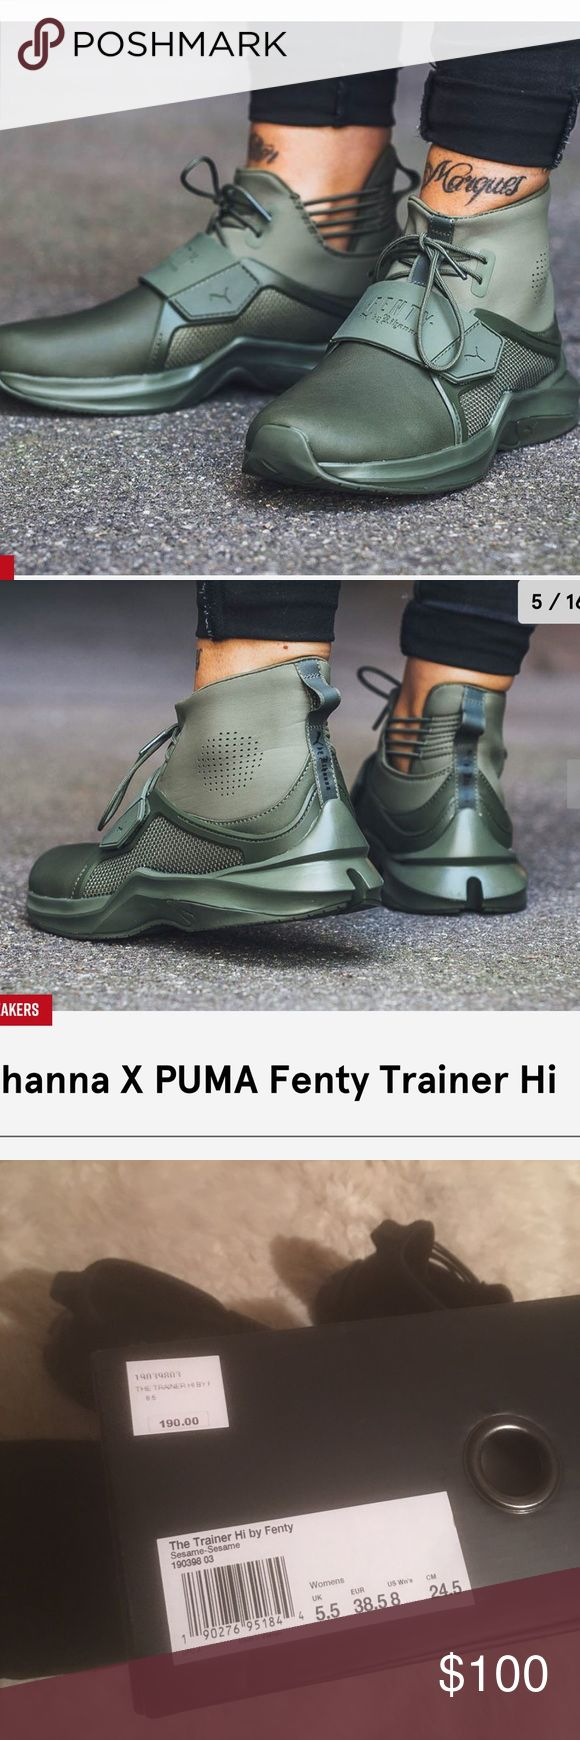 Rihanna x puma trainers Puma x Rihanna sneakers. The trainer hi. New in the box. Comes with the Fenty dust bag. Woman's sizing. $190 retail.   !! No trades / no holds / no modeling  !! Ships same day  !! Bundle to save more or make an offer using the button :)  ❗️Only photographed one color for proof of authenticity and that they are ready to ship. The shoe comes in green, nude, or black. Bundle to save. Check my page for more photos. Puma Shoes